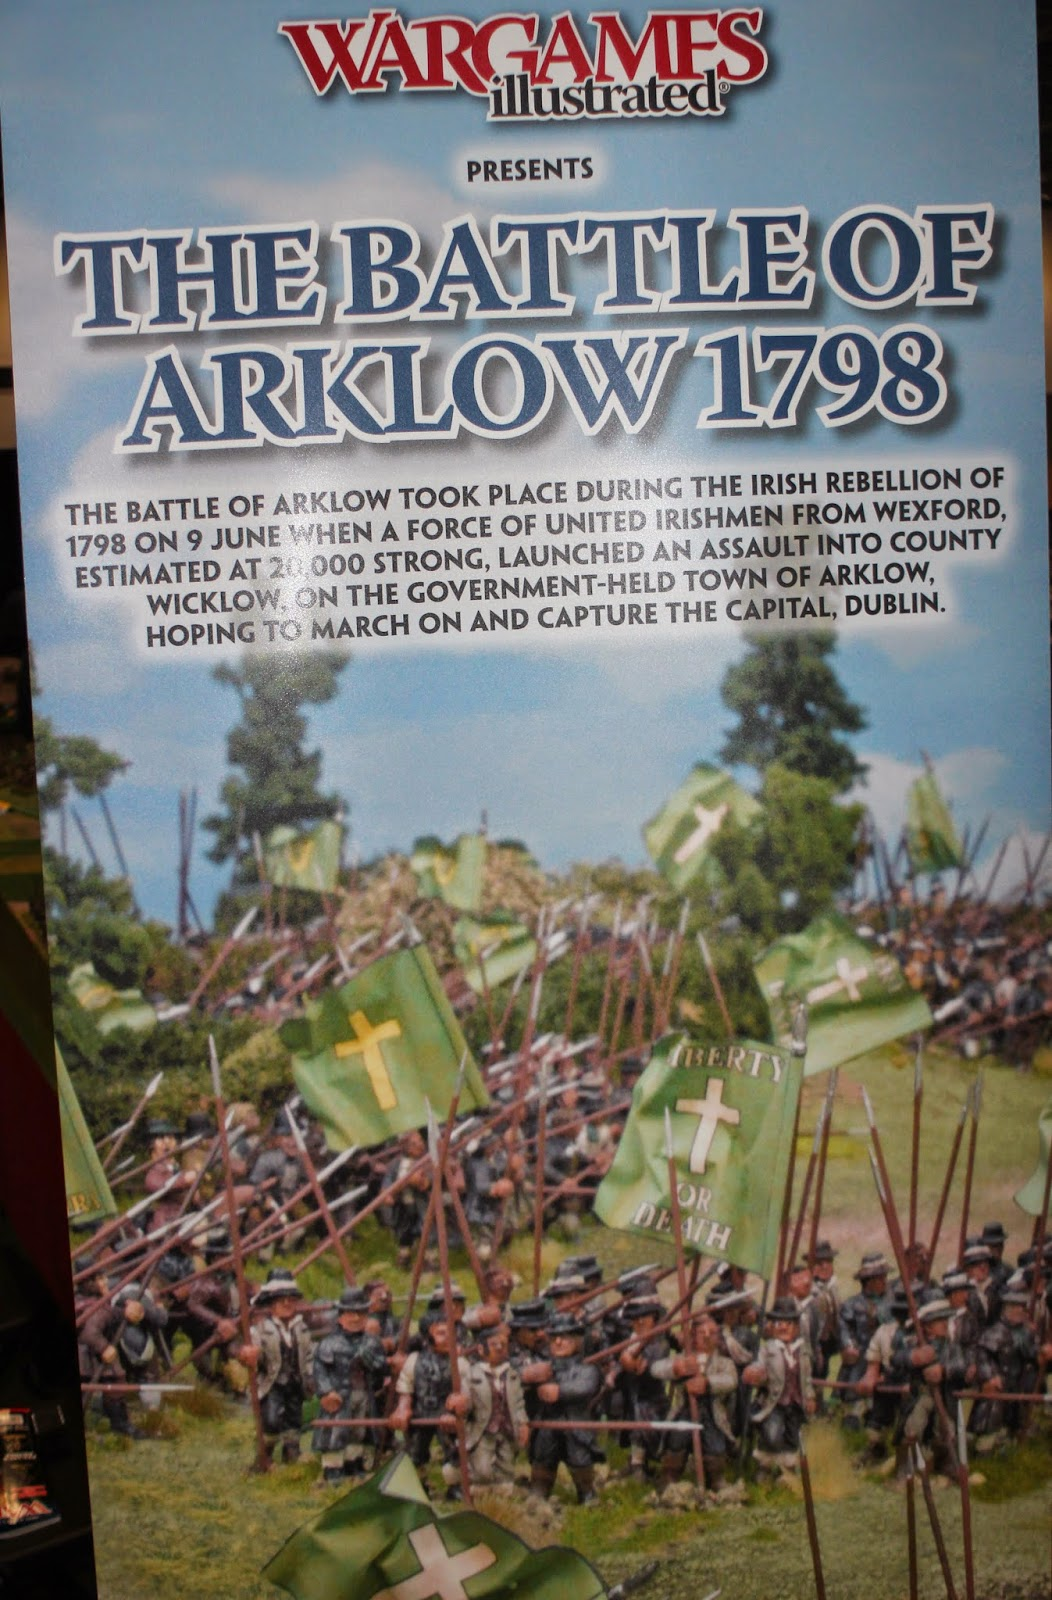 u s history stuff i guess History movies, like most movies, have a huge audience in the us  or fantastic,  history movies shape the way people think about the past.